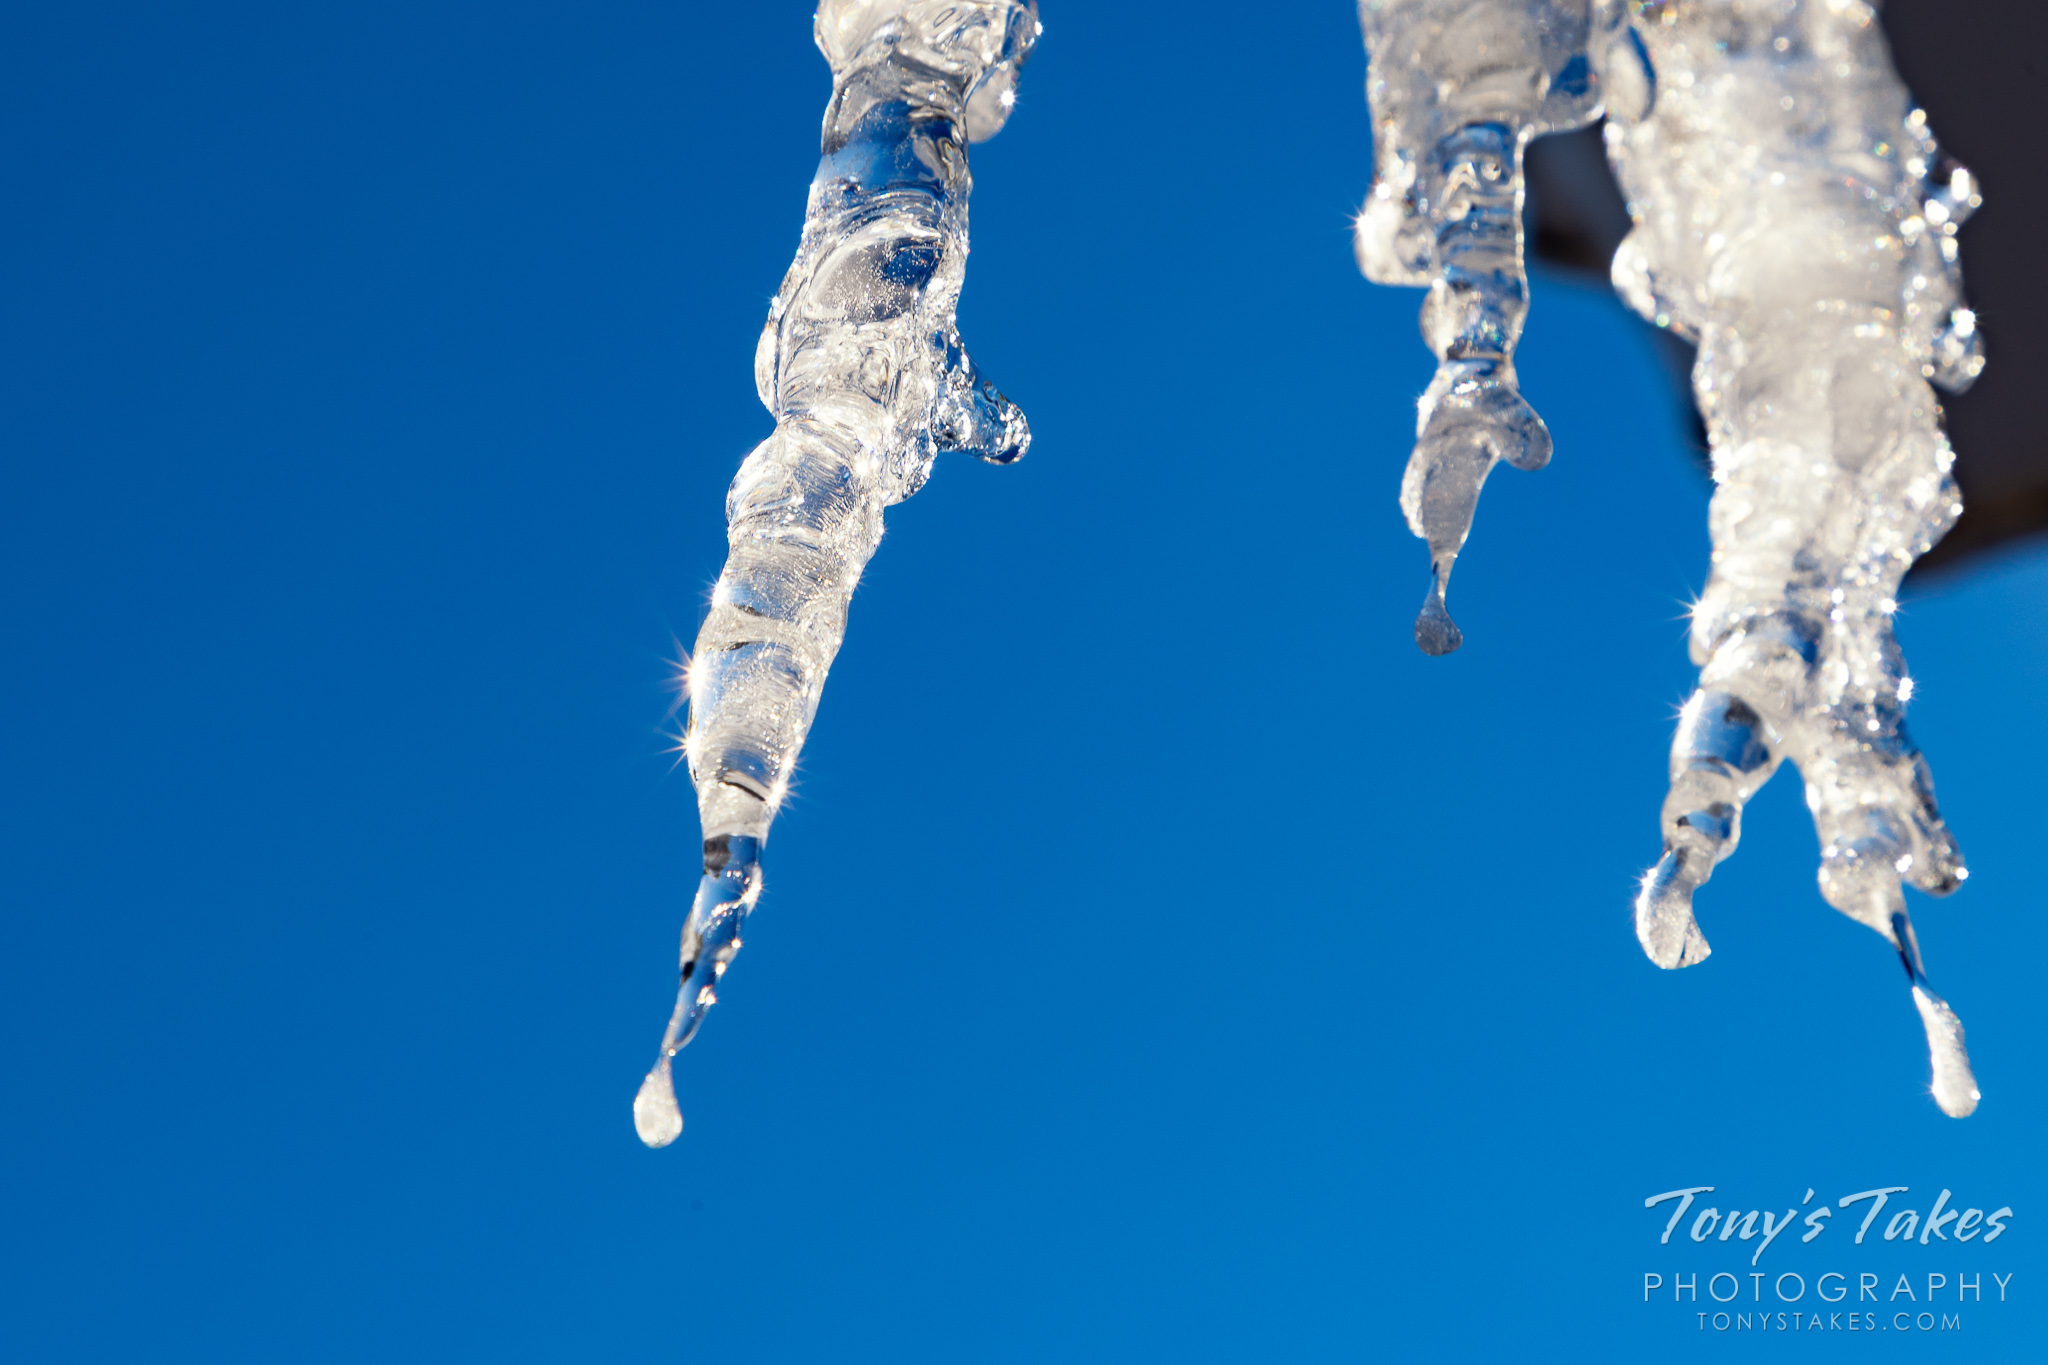 Icicles shine against a deep blue sky in Colorado. (© Tony's Takes)